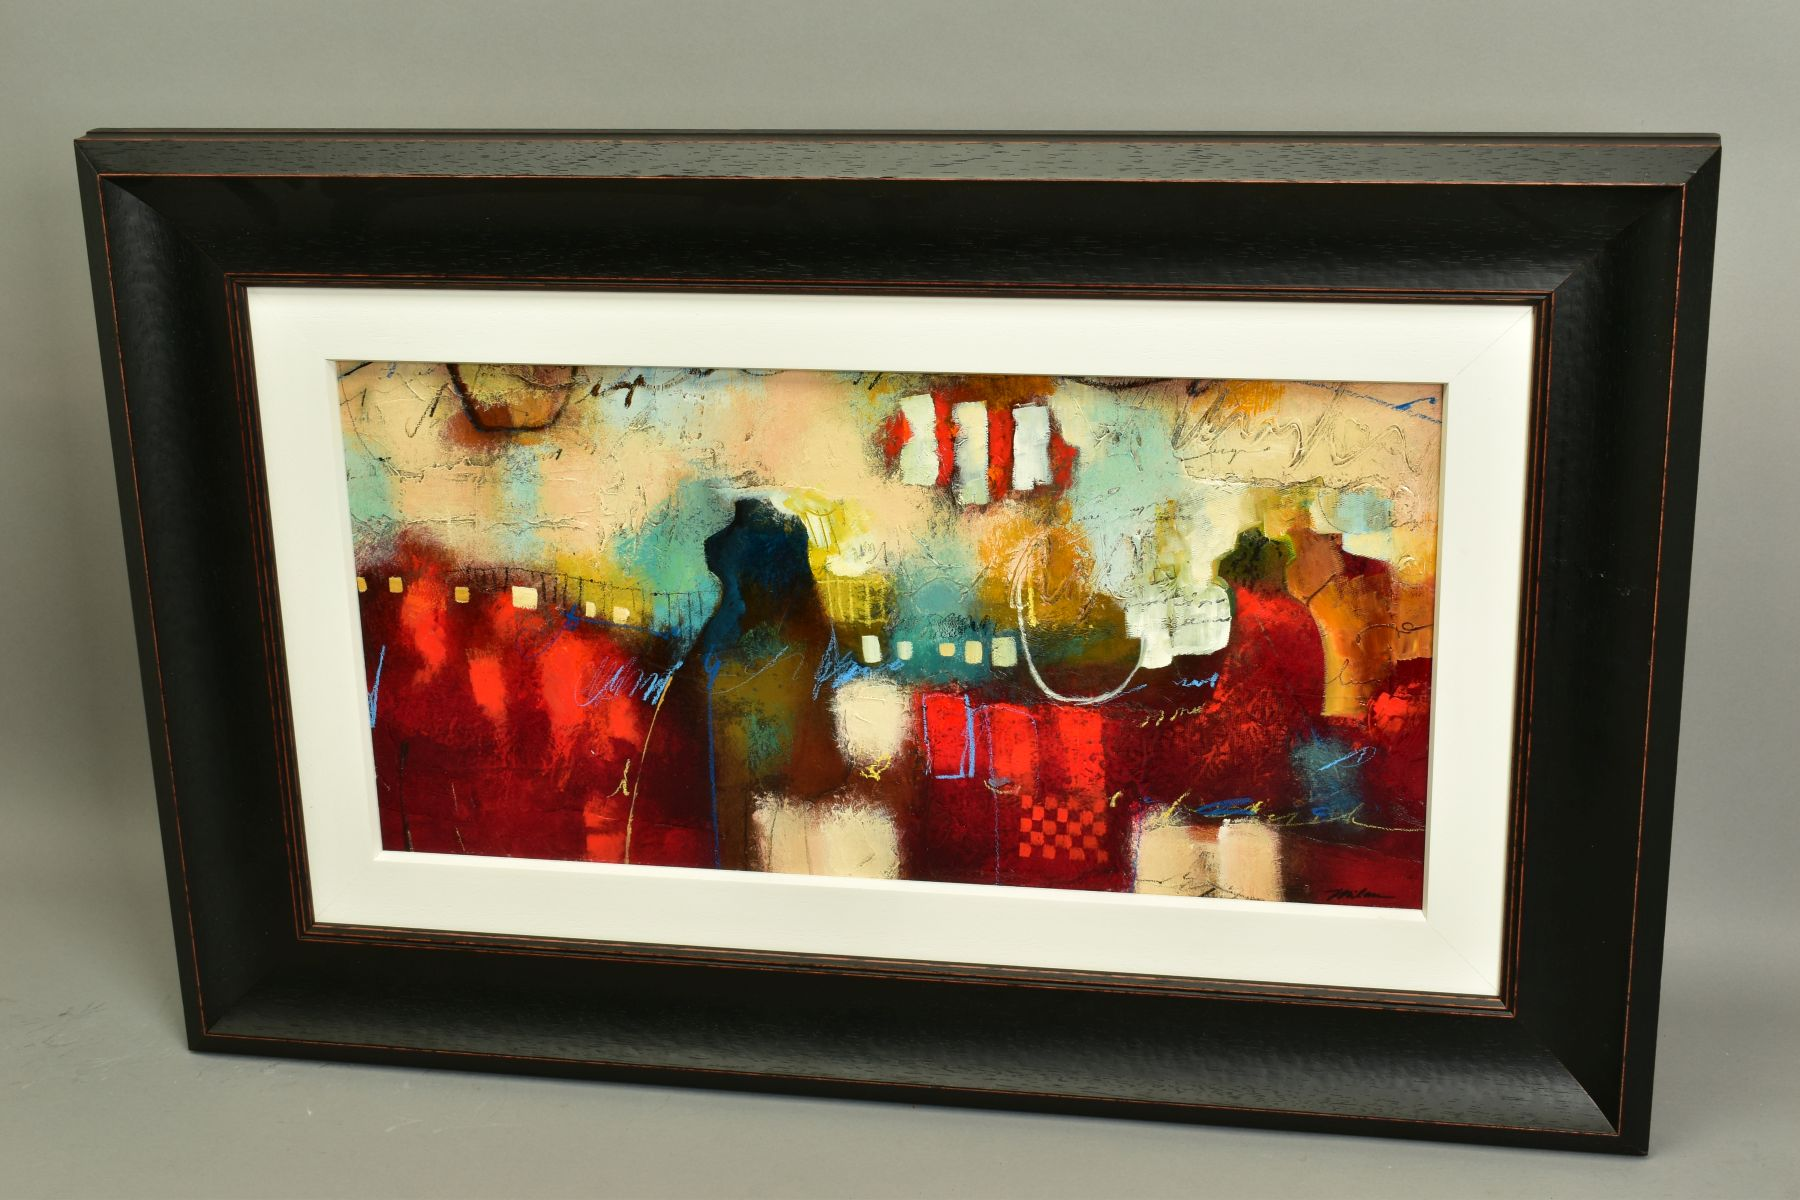 JOHN AND ELLI MILAN (AMERICAN CONTEMPORARY), 'Red Montage', a colourful abstract from the husband - Image 5 of 6